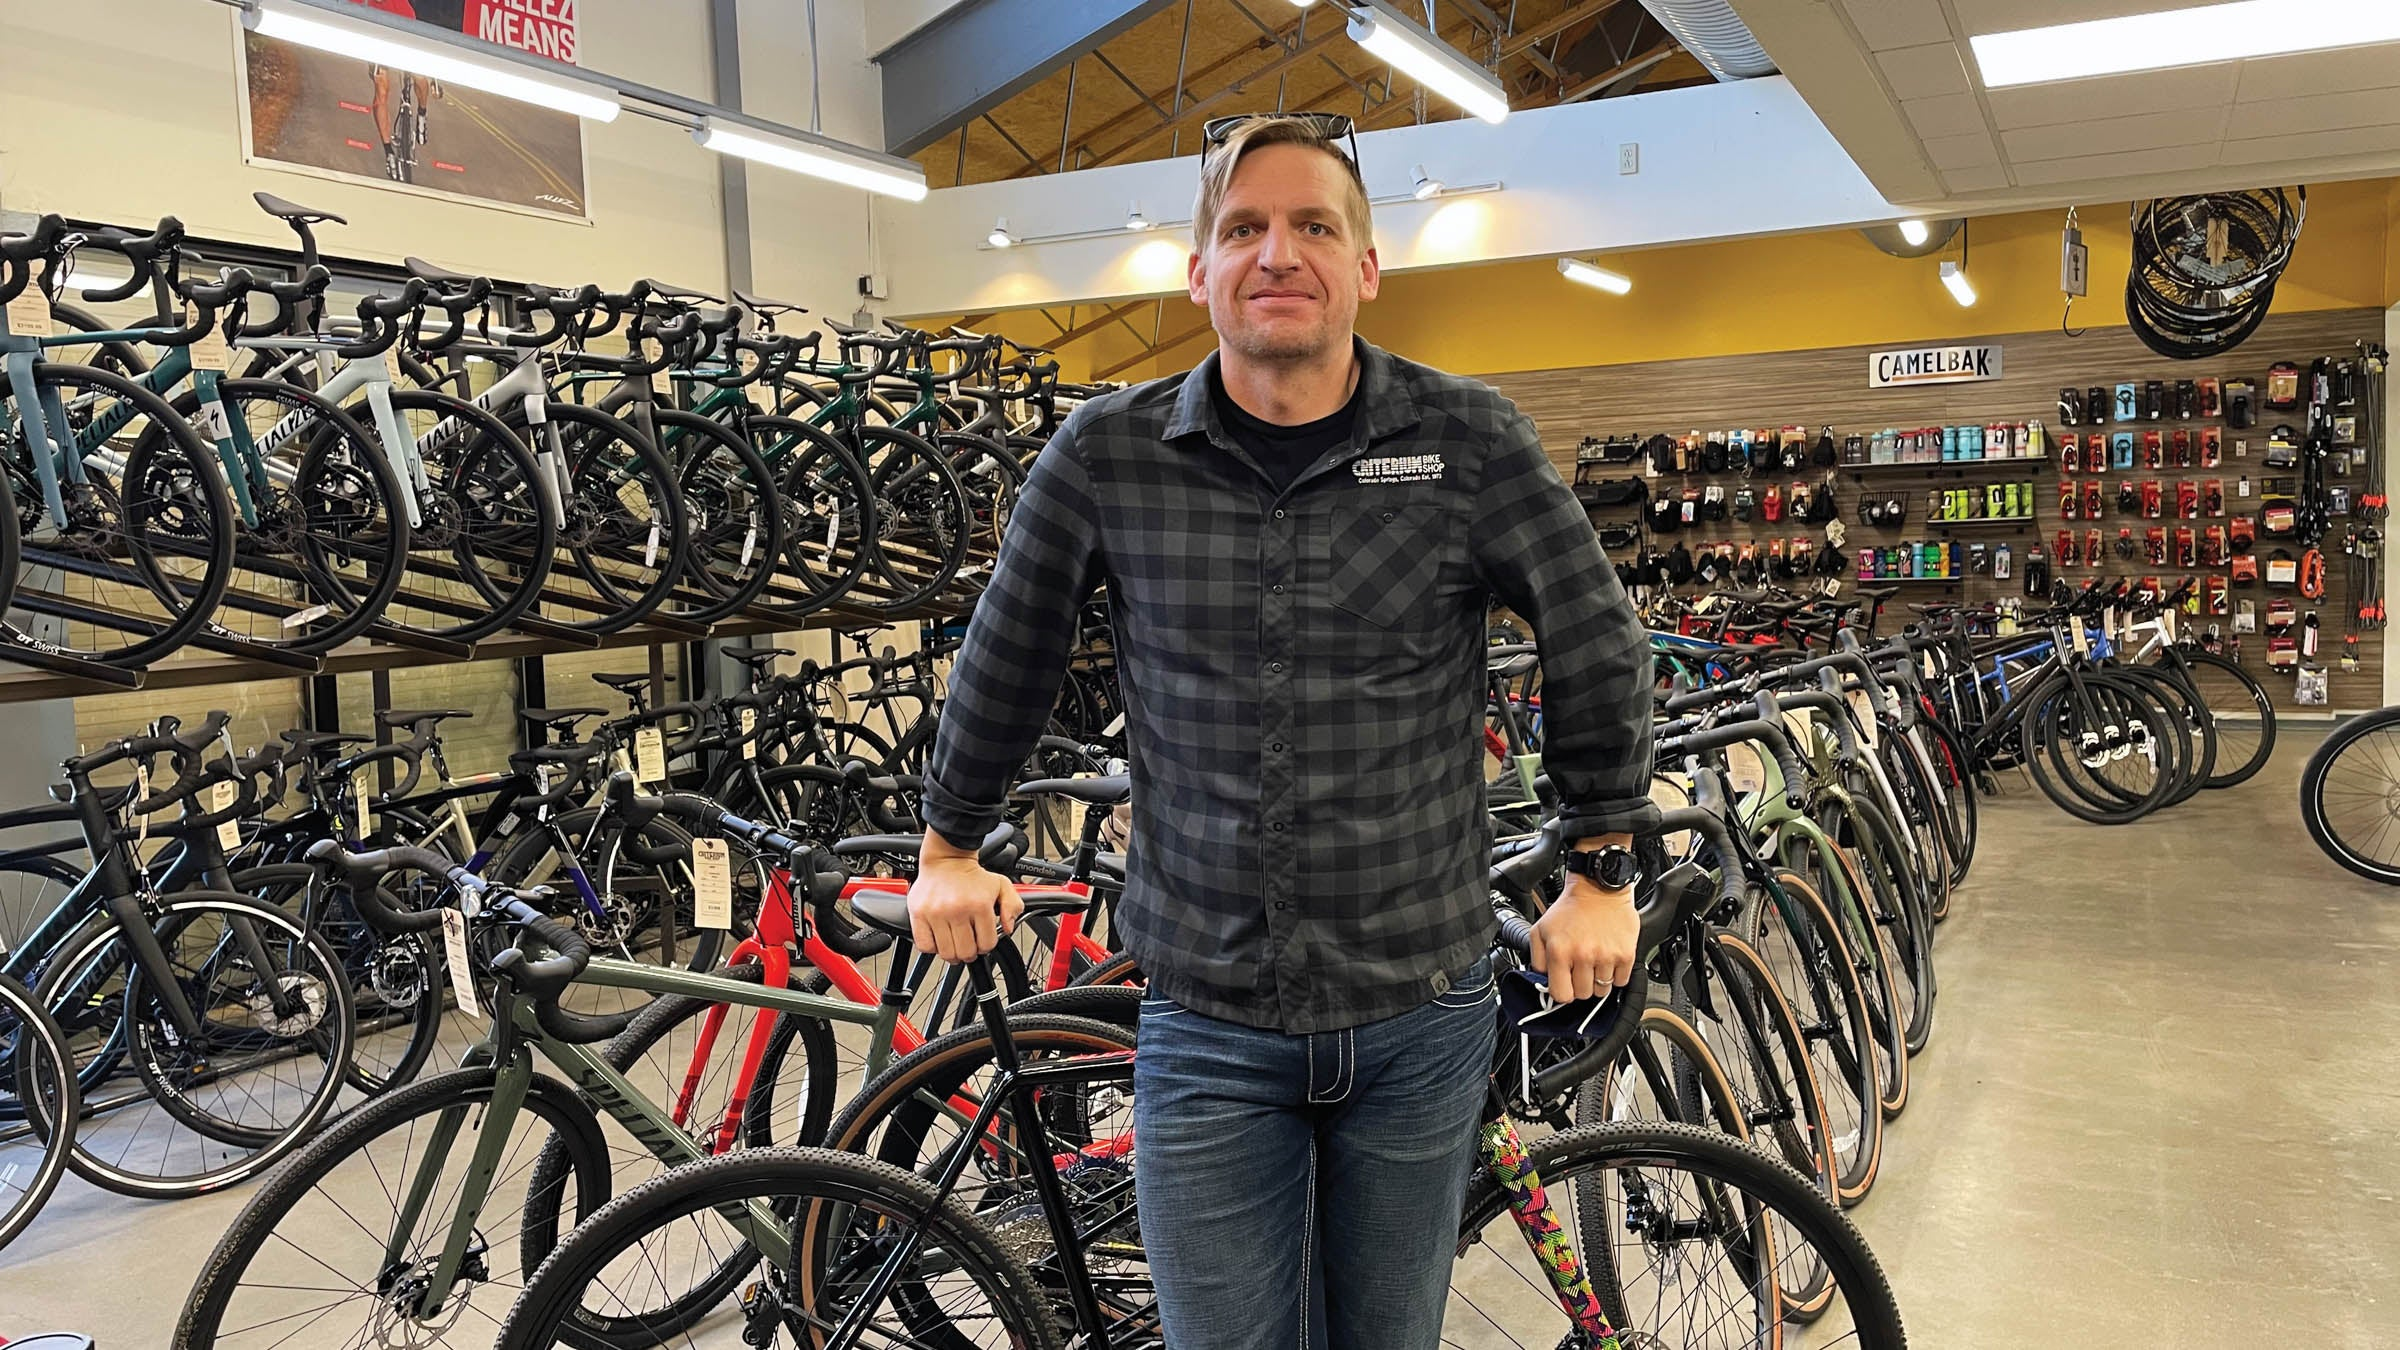 Ponsor in front of rows of bicycles